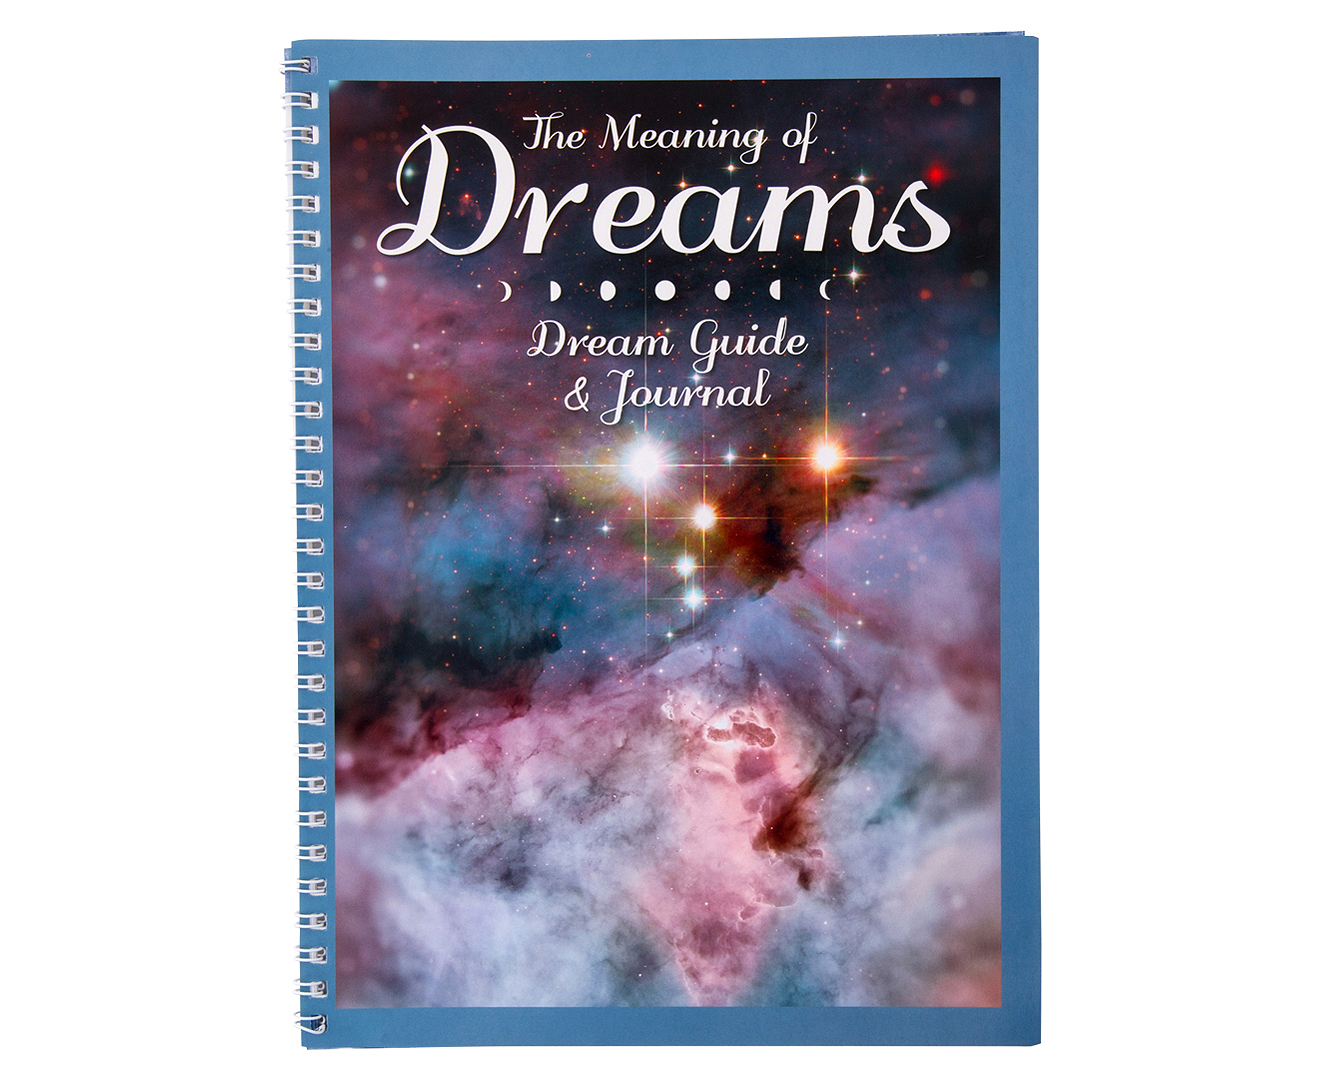 The Meaning of Dreams Book & Dreamcatcher Box Set | Catch ... - photo#45